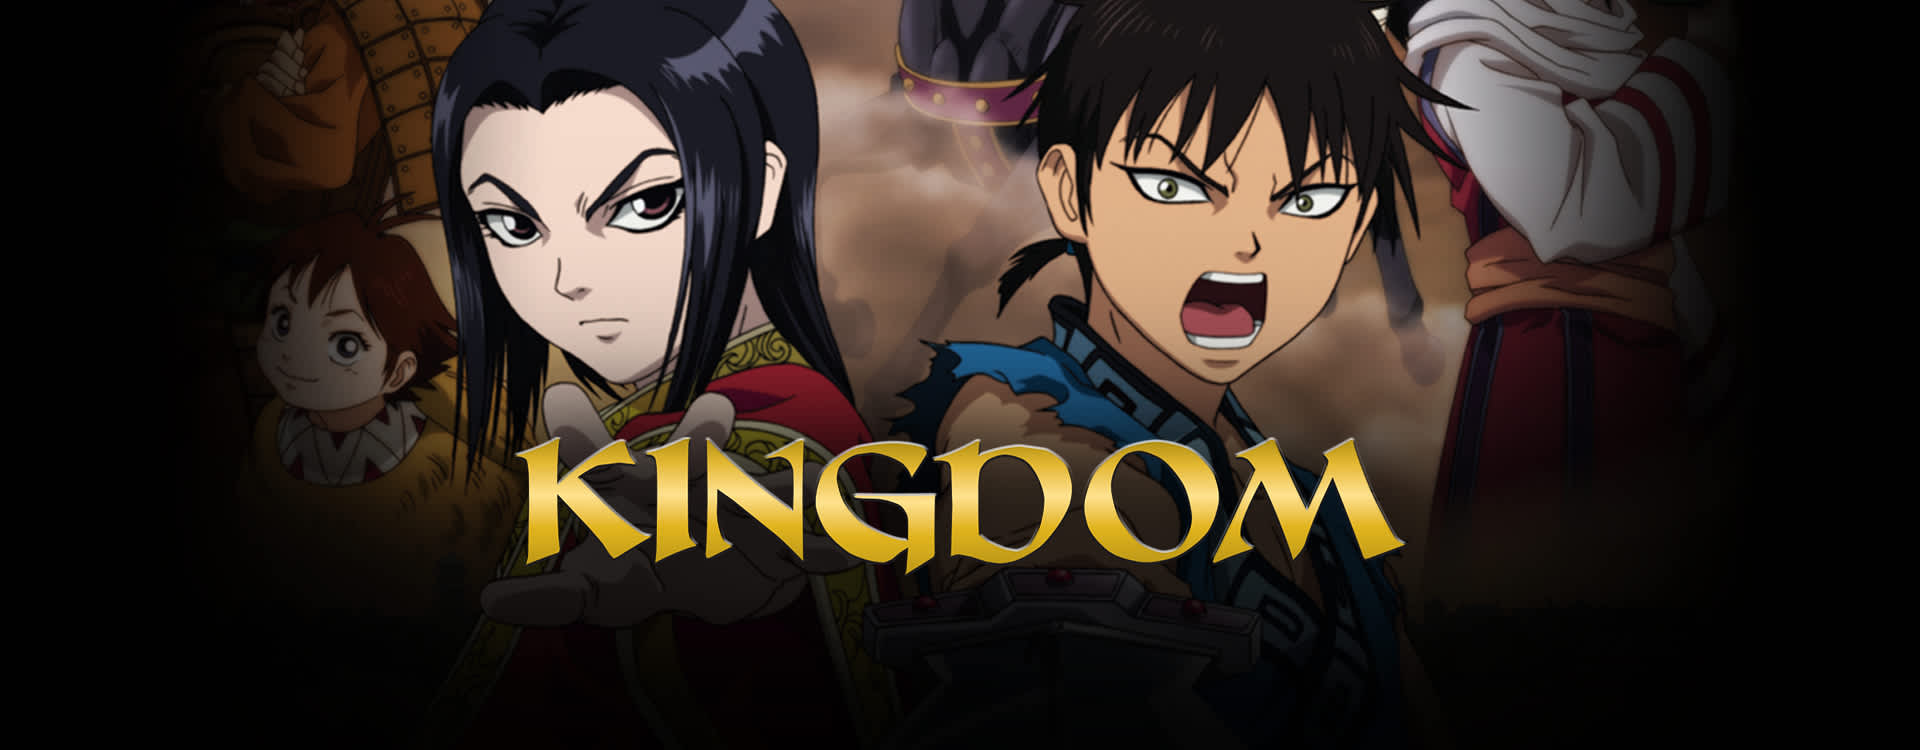 Watch Kingdom Episodes Sub & Dub | Action/Adventure, Fantasy Anime